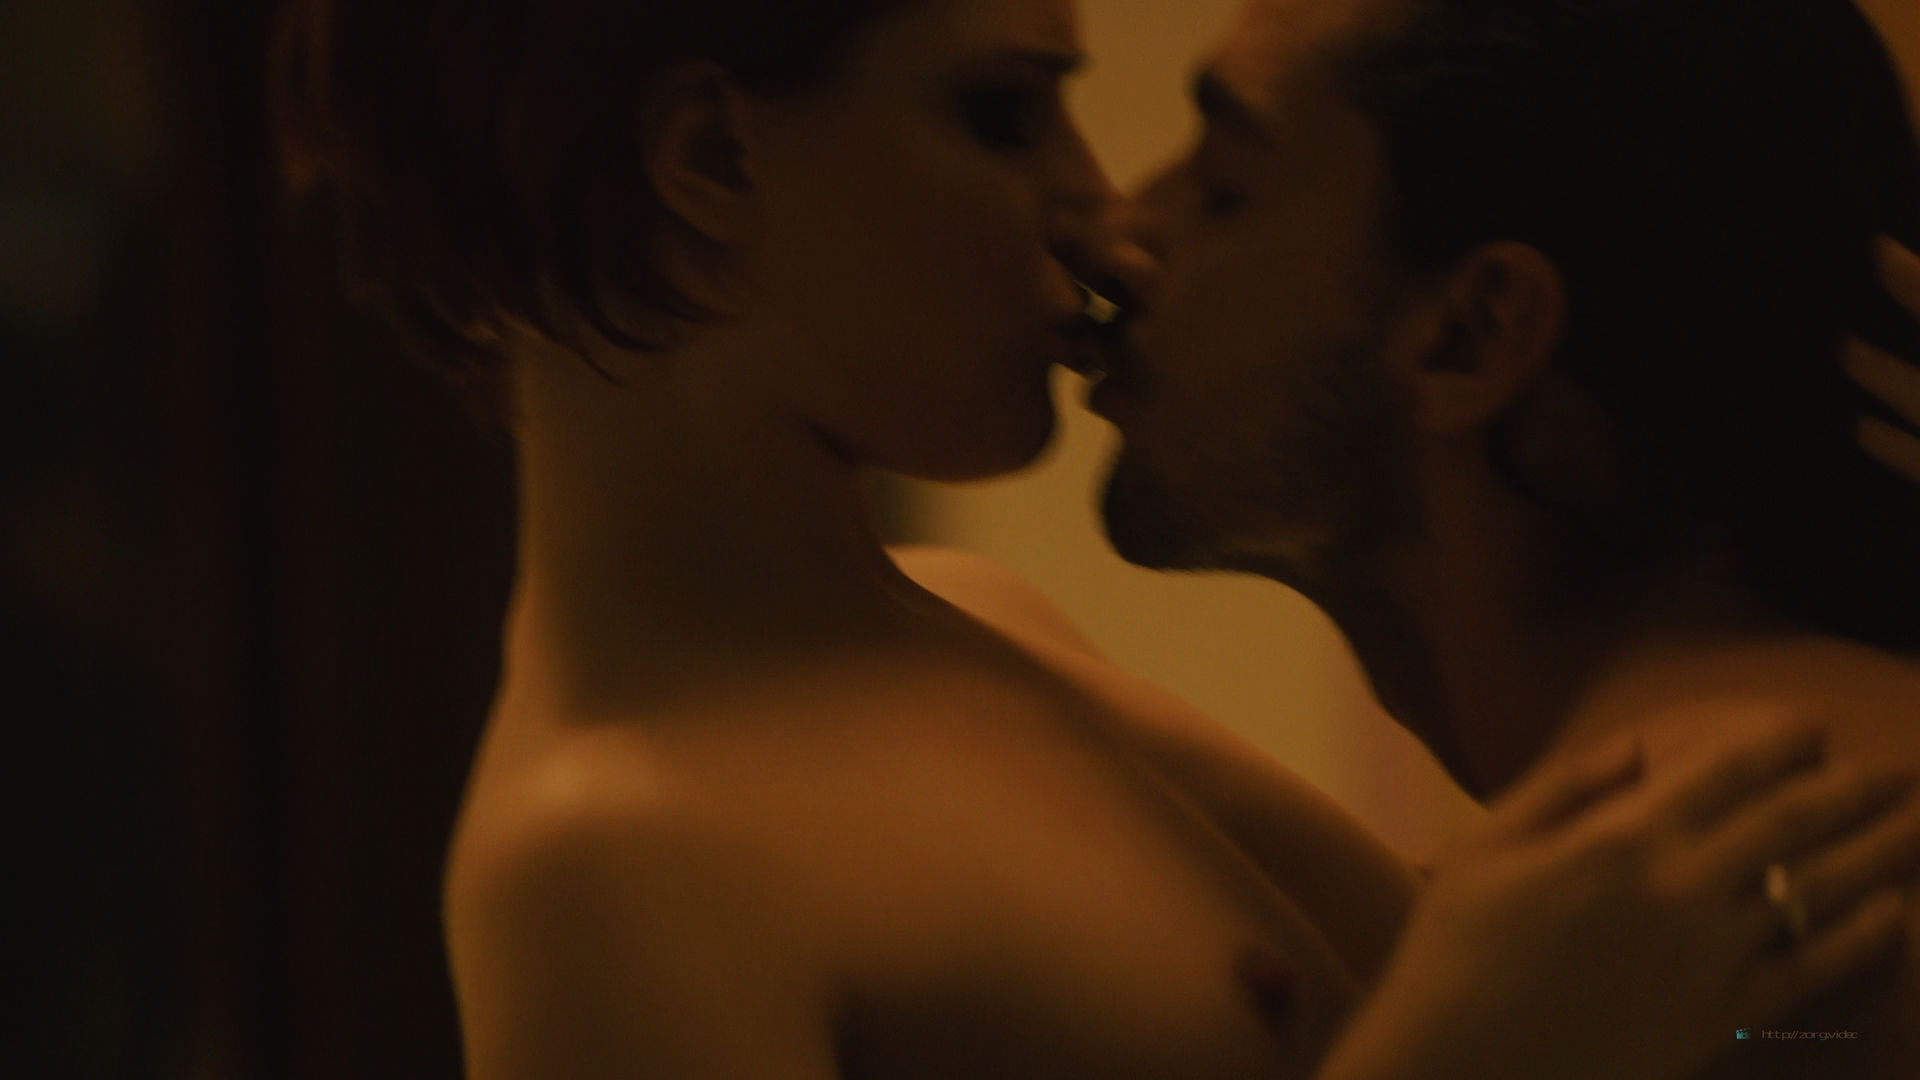 Evan Rachel Wood nude brief topless in sex scene - The Necessary Death of Charlie Countryman (2013) hd1080p BluRay (5)